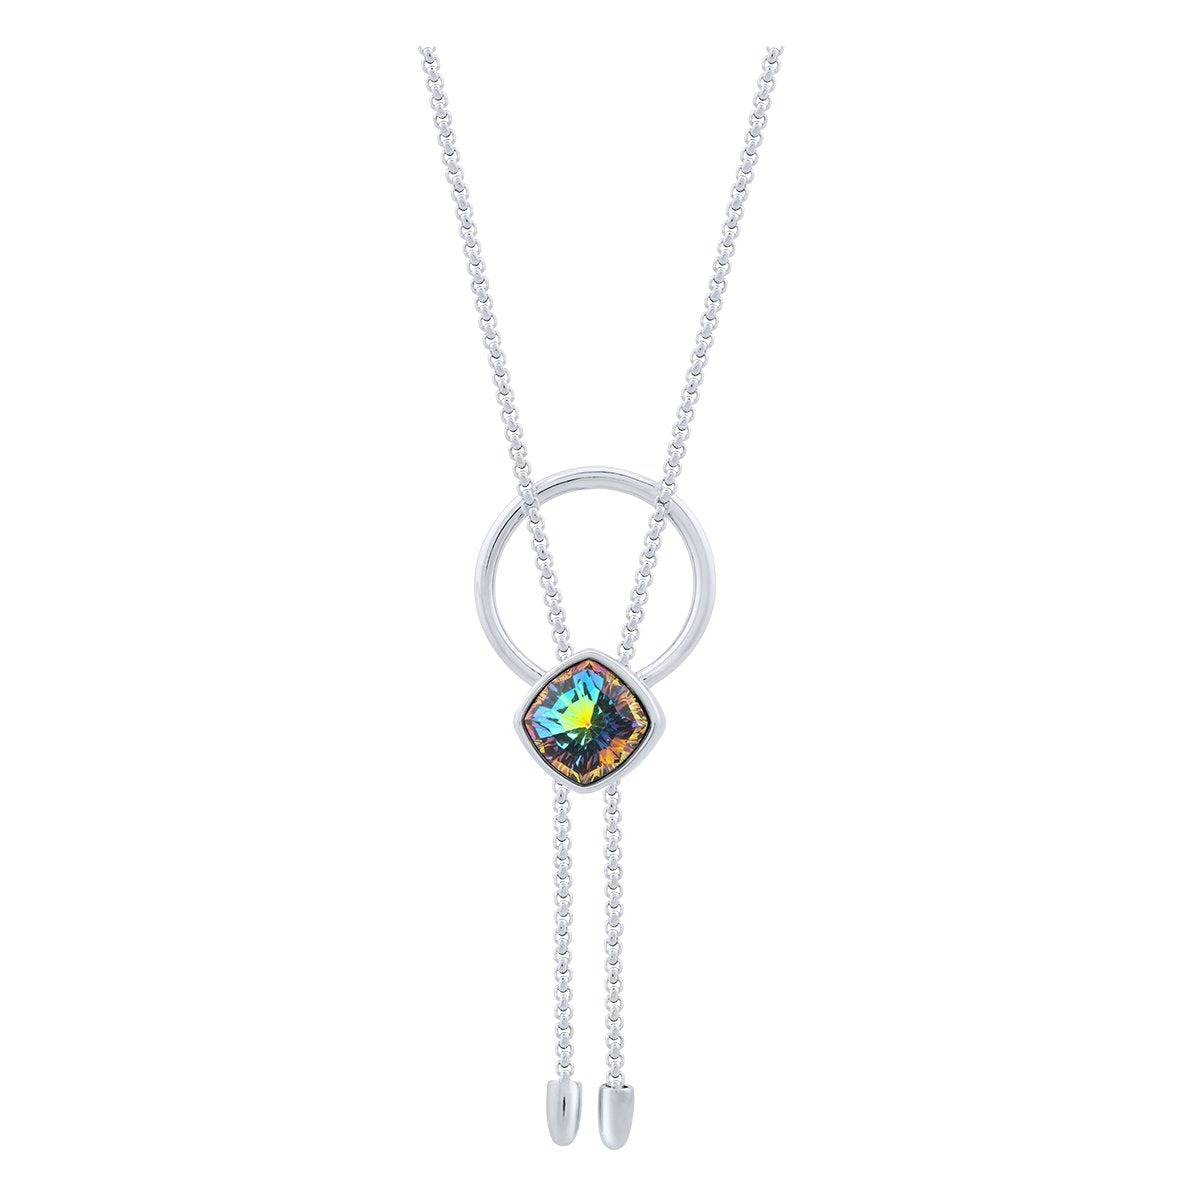 Louvre Necklace Silver Vitrail Medium JOY OF SPARKLE FOREVER CRYSTALS